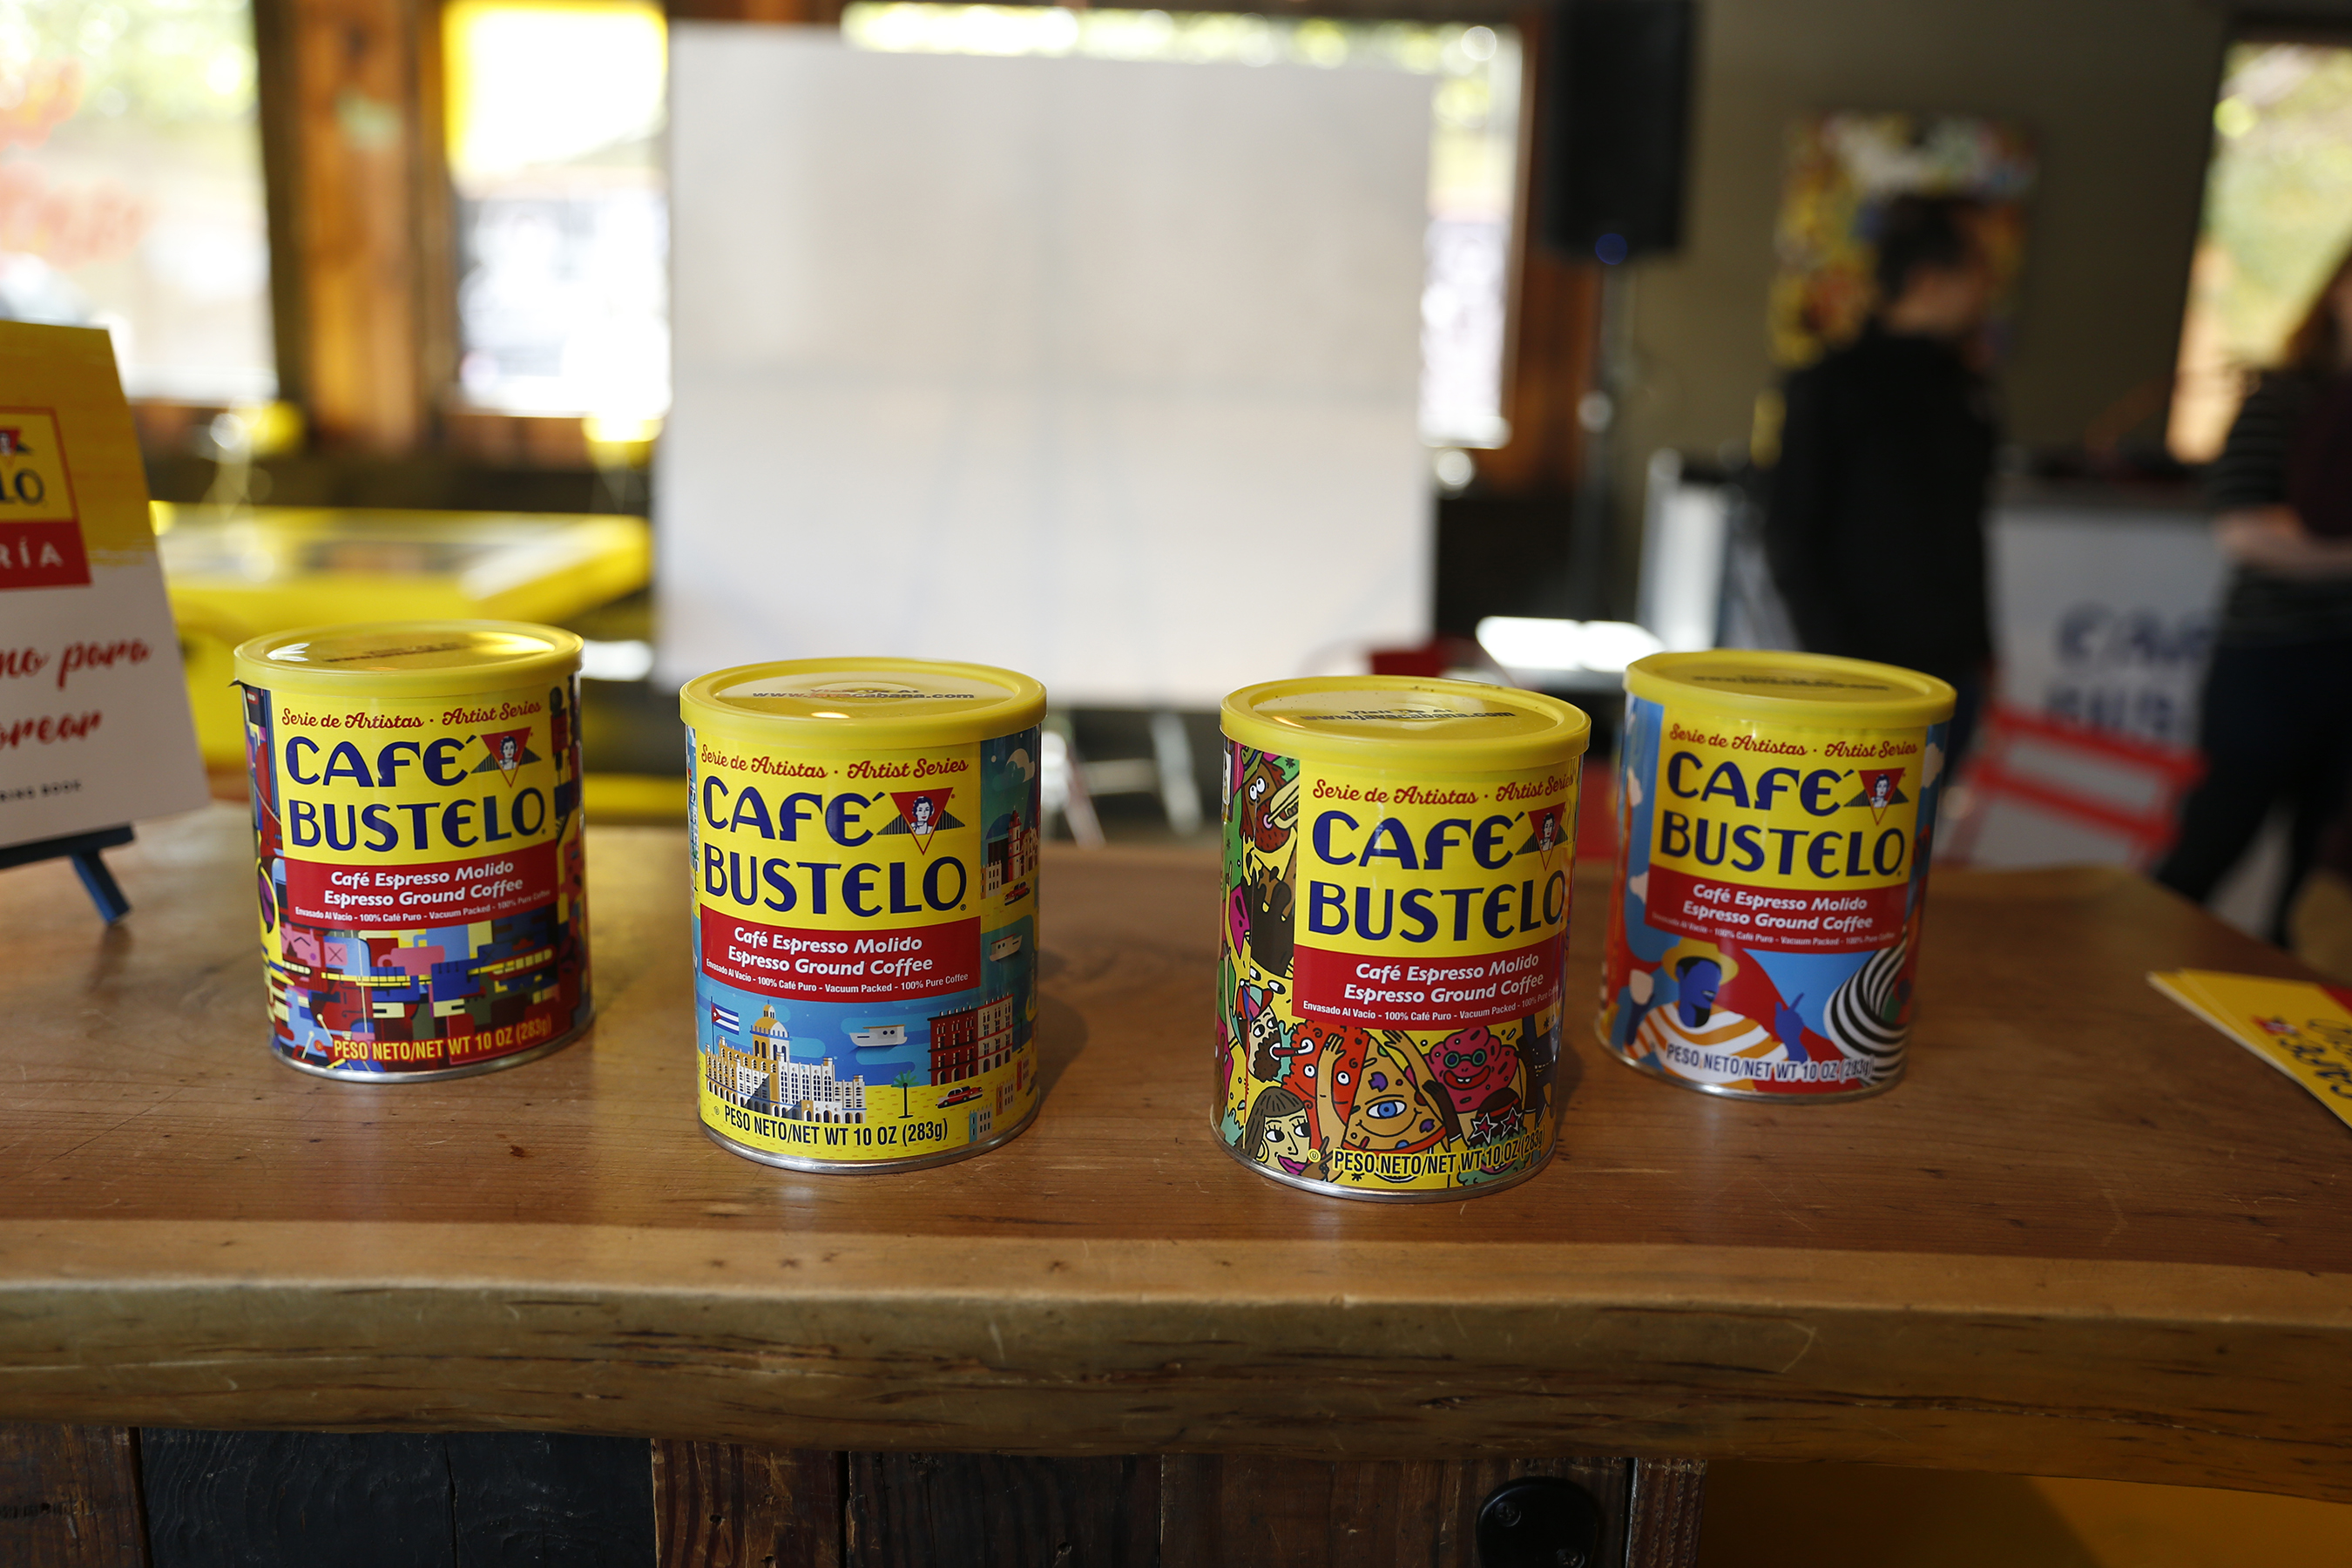 The Café Bustelo® El Café del Futuro Scholarship maintains founder Gregorio Bustelo's passion and tradition of reinvesting in local communities and celebrating Latino cultural values.